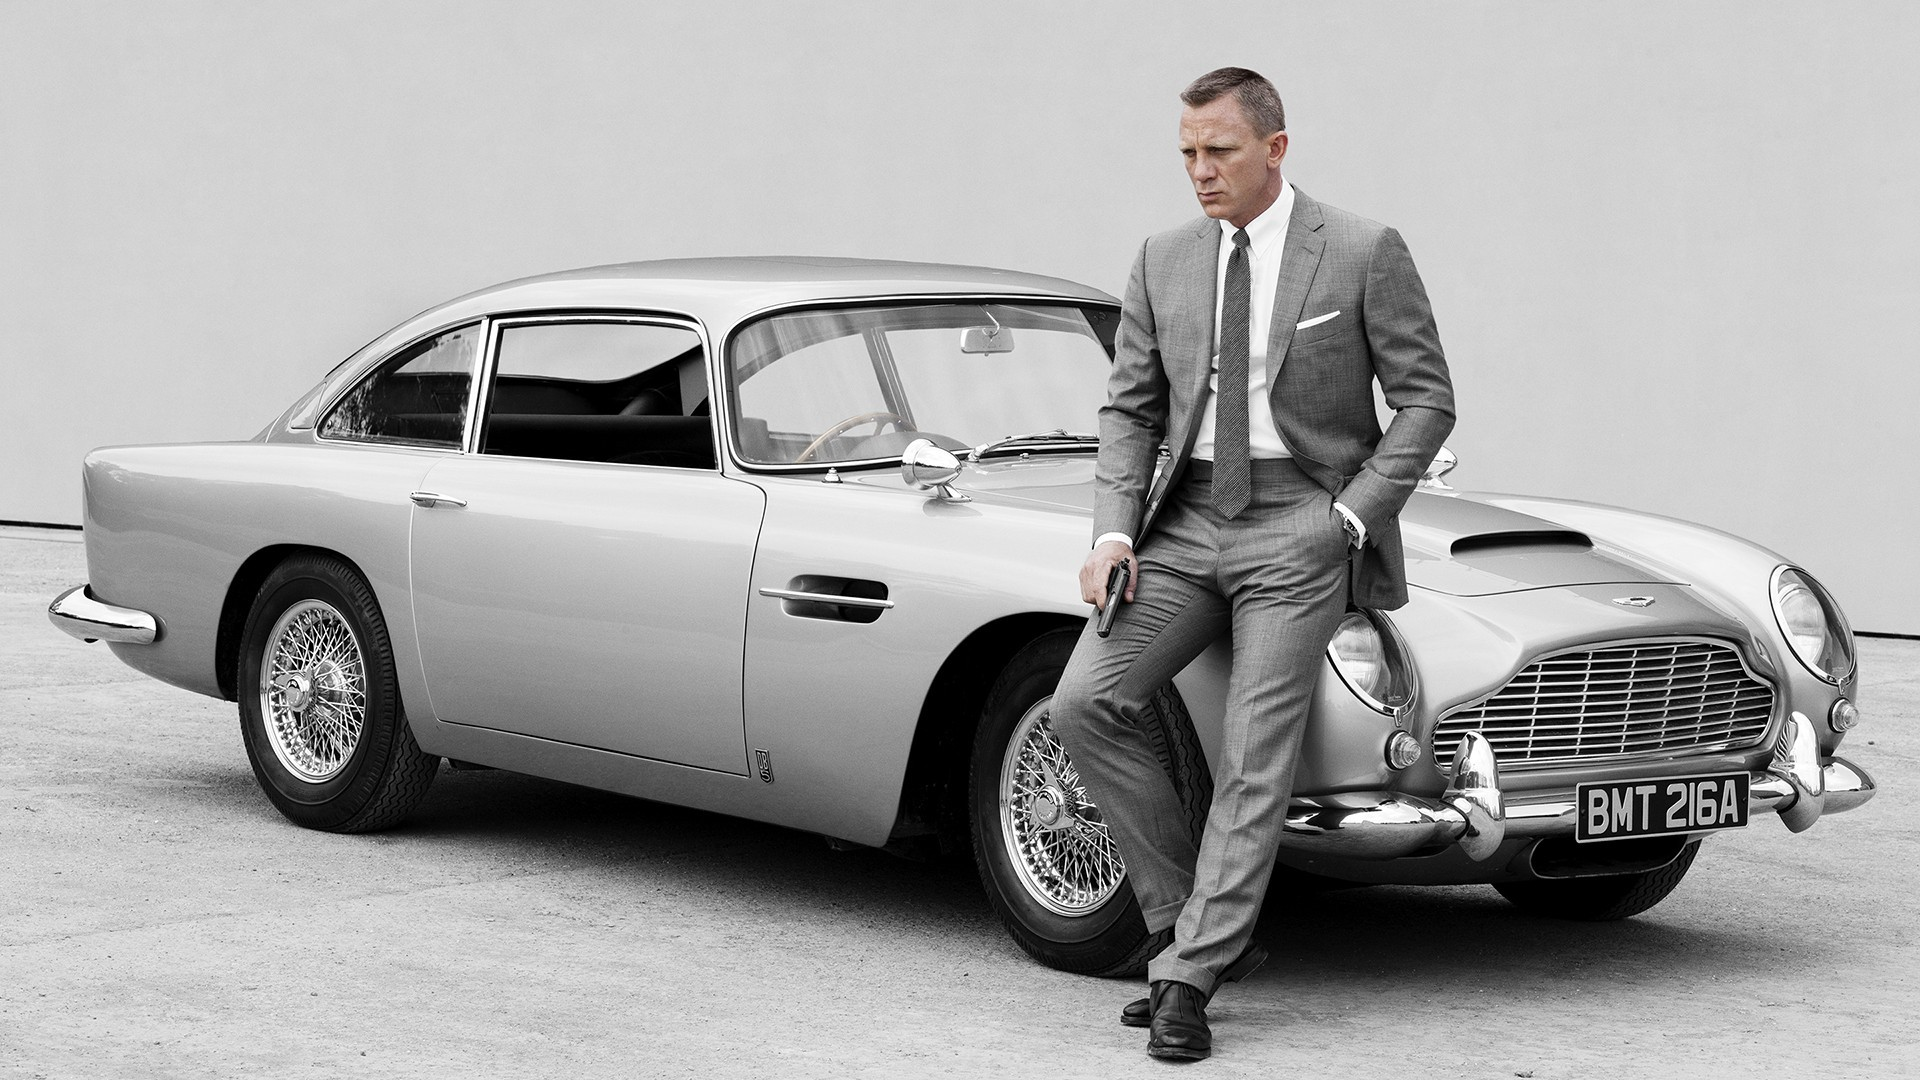 daniel-craig-indicates-hes-not-done-with-james-bond-after-all-social.jpg